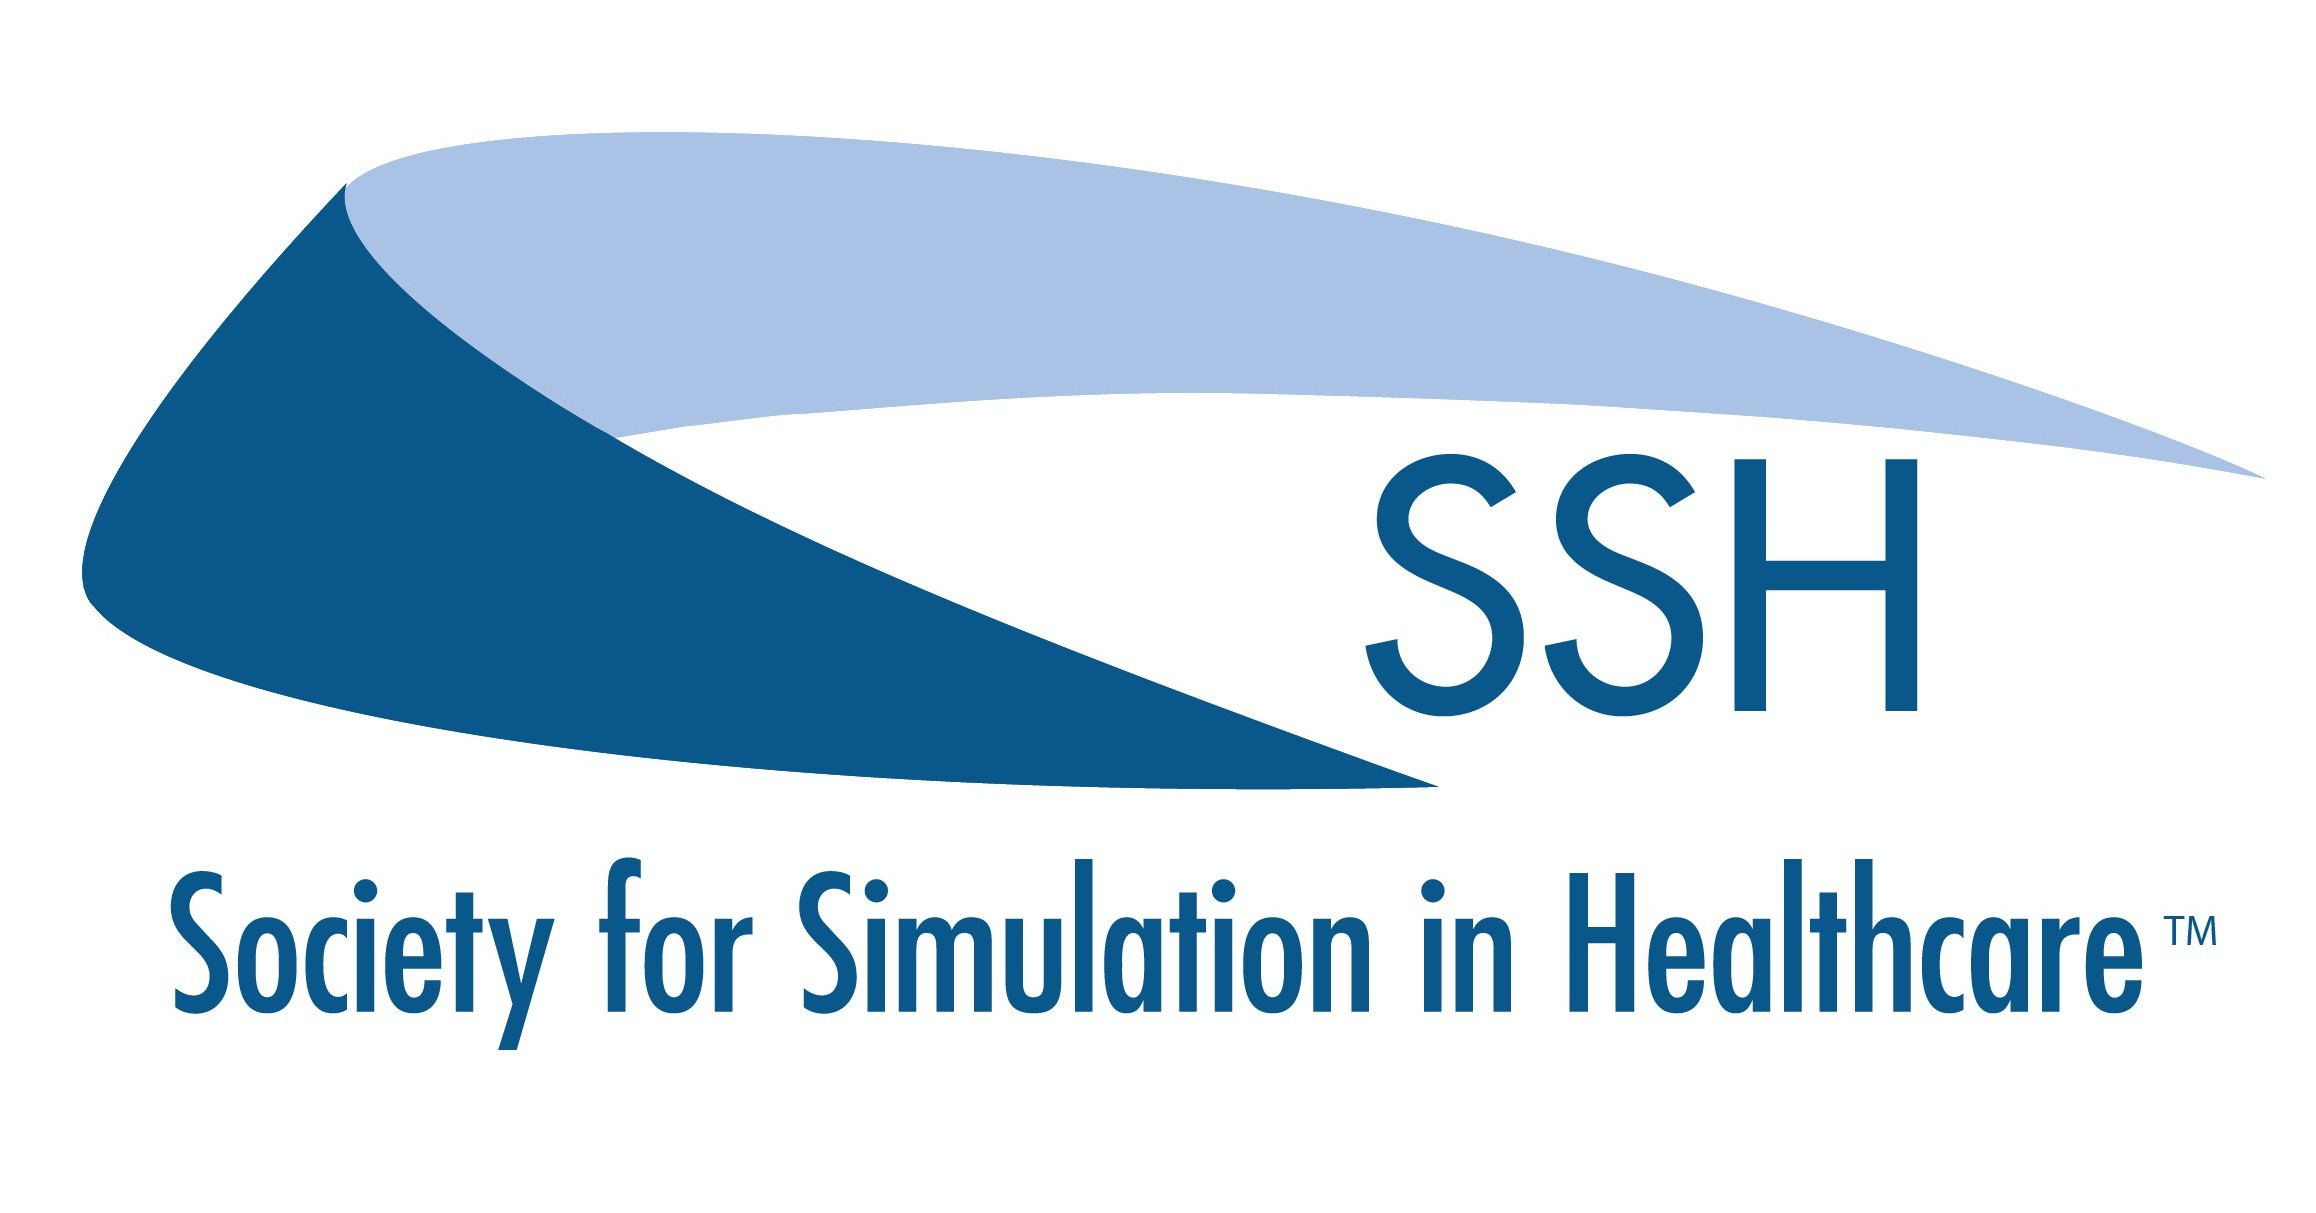 Society for Simulation in Healthcare Logo